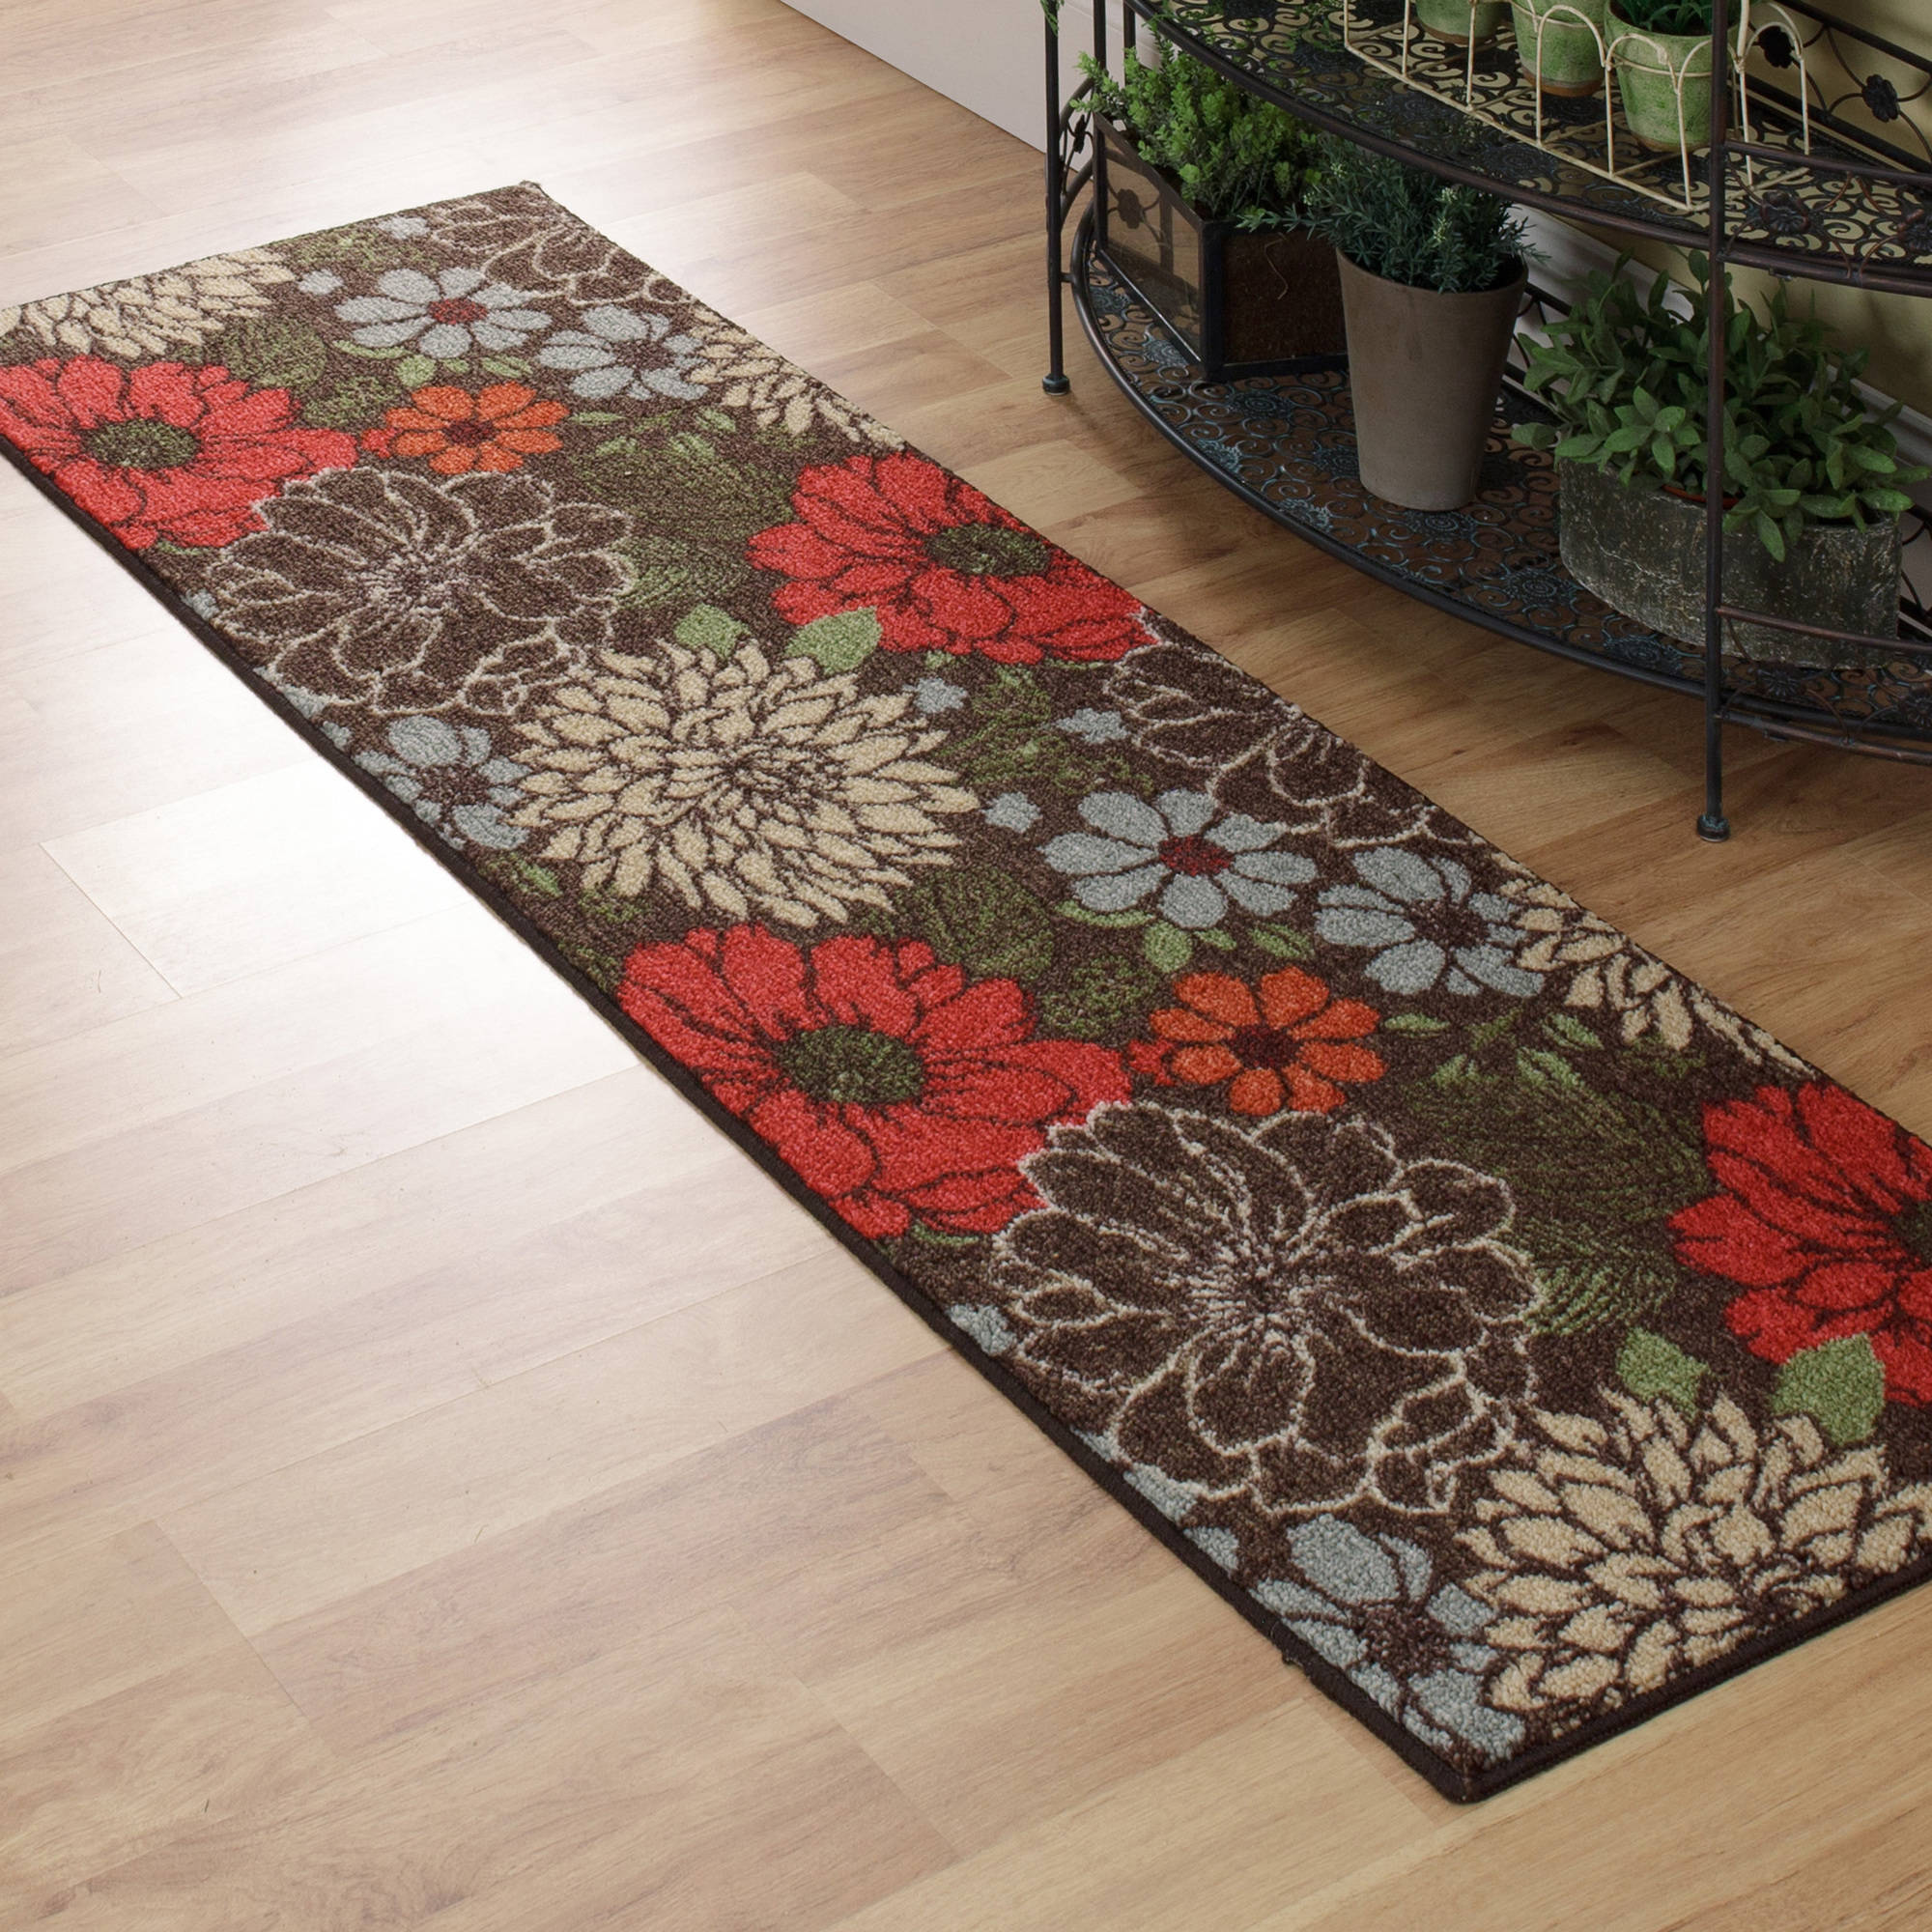 Better Homes and Gardens Sorbet Floral Rug